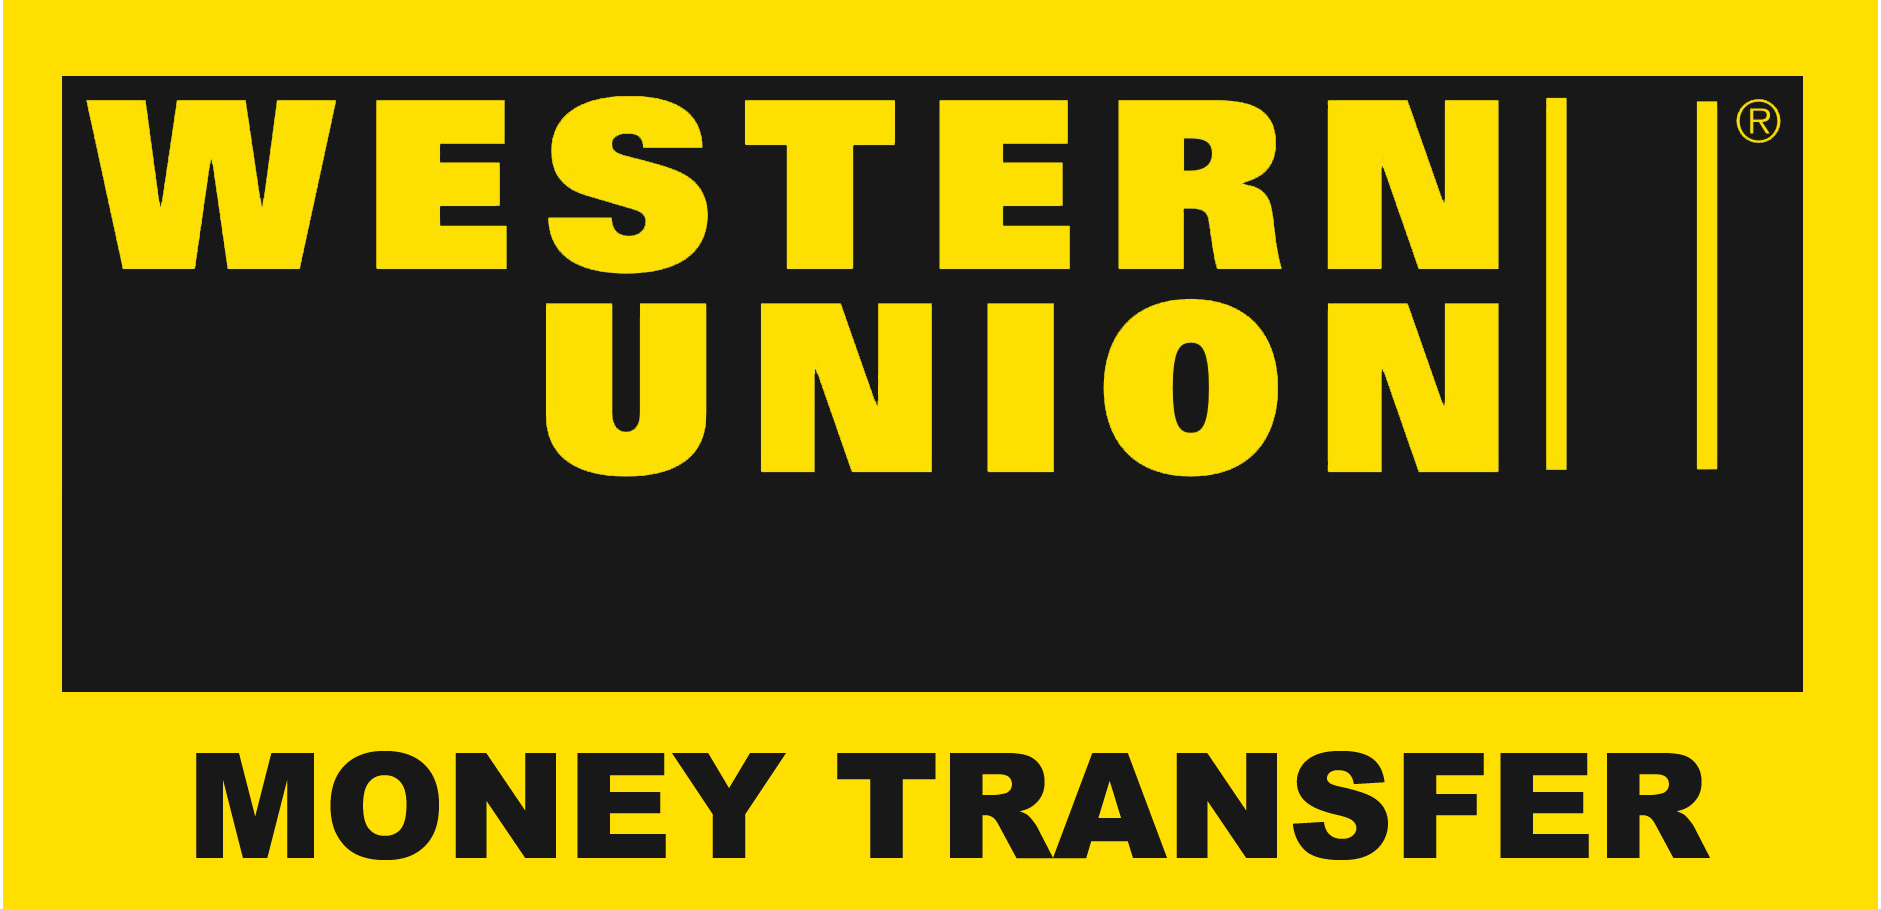 For Western Union Call 9312266779 9312266773 0120 4111186 4238743